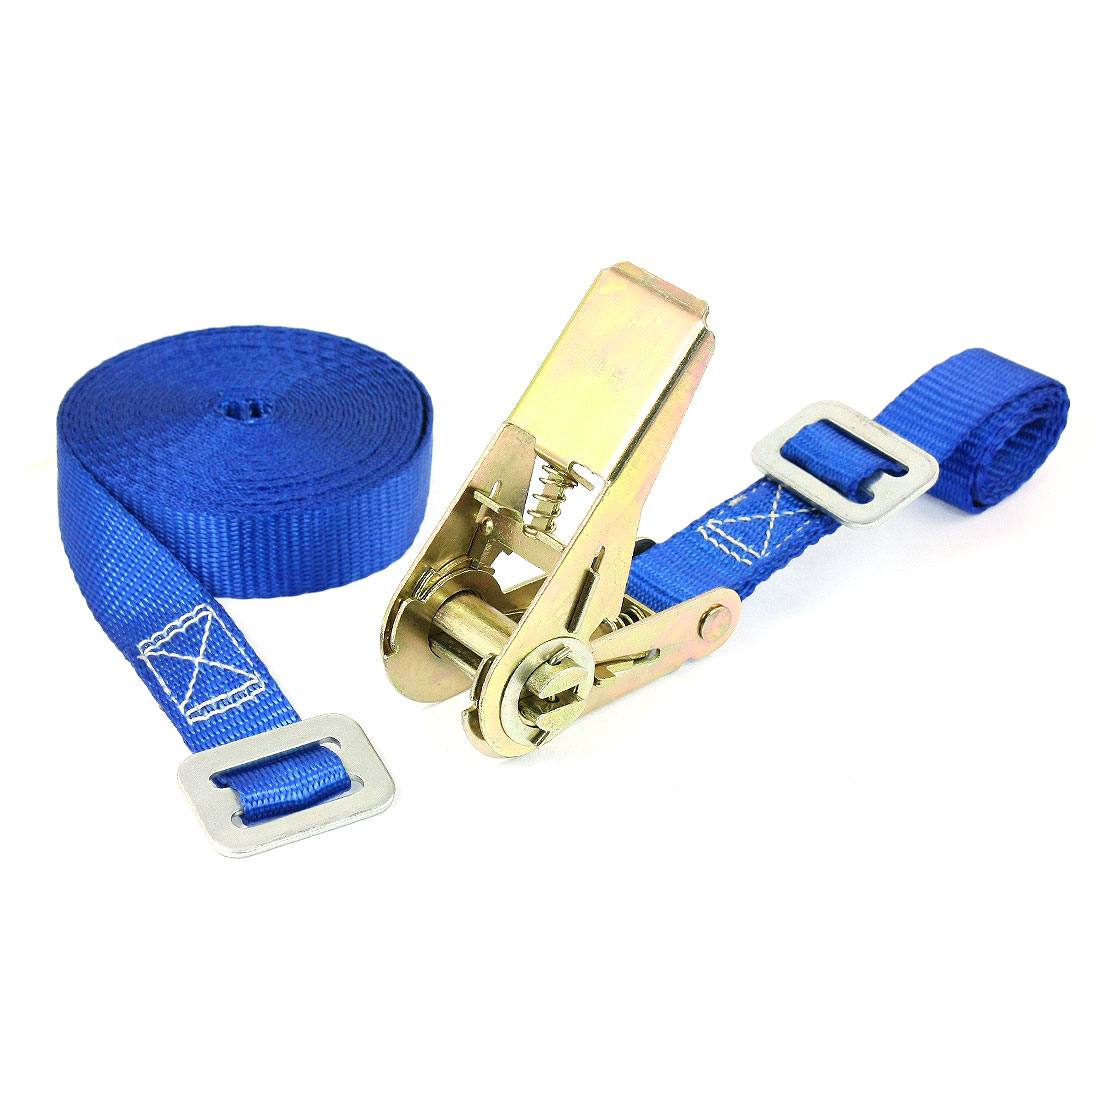 Travel Luggage Binding Adjustable Metal Ratchet Tie Down Strap 5M 16ft Blue